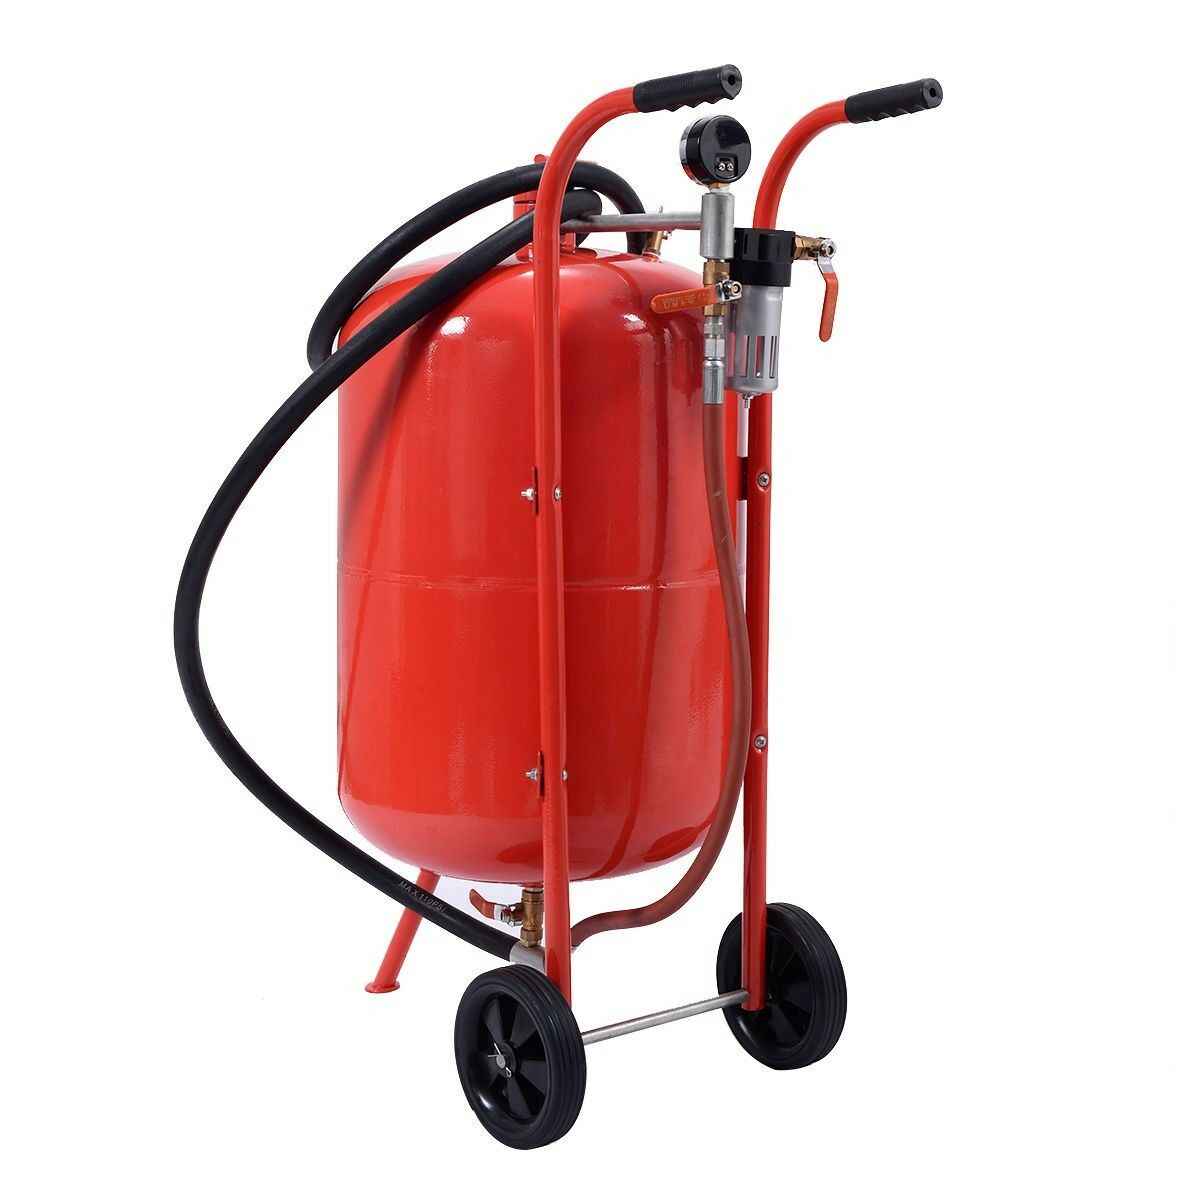 20 Gallon Sandblaster Sand Blaster Portable Air Media Abrasive Blasting Tank New